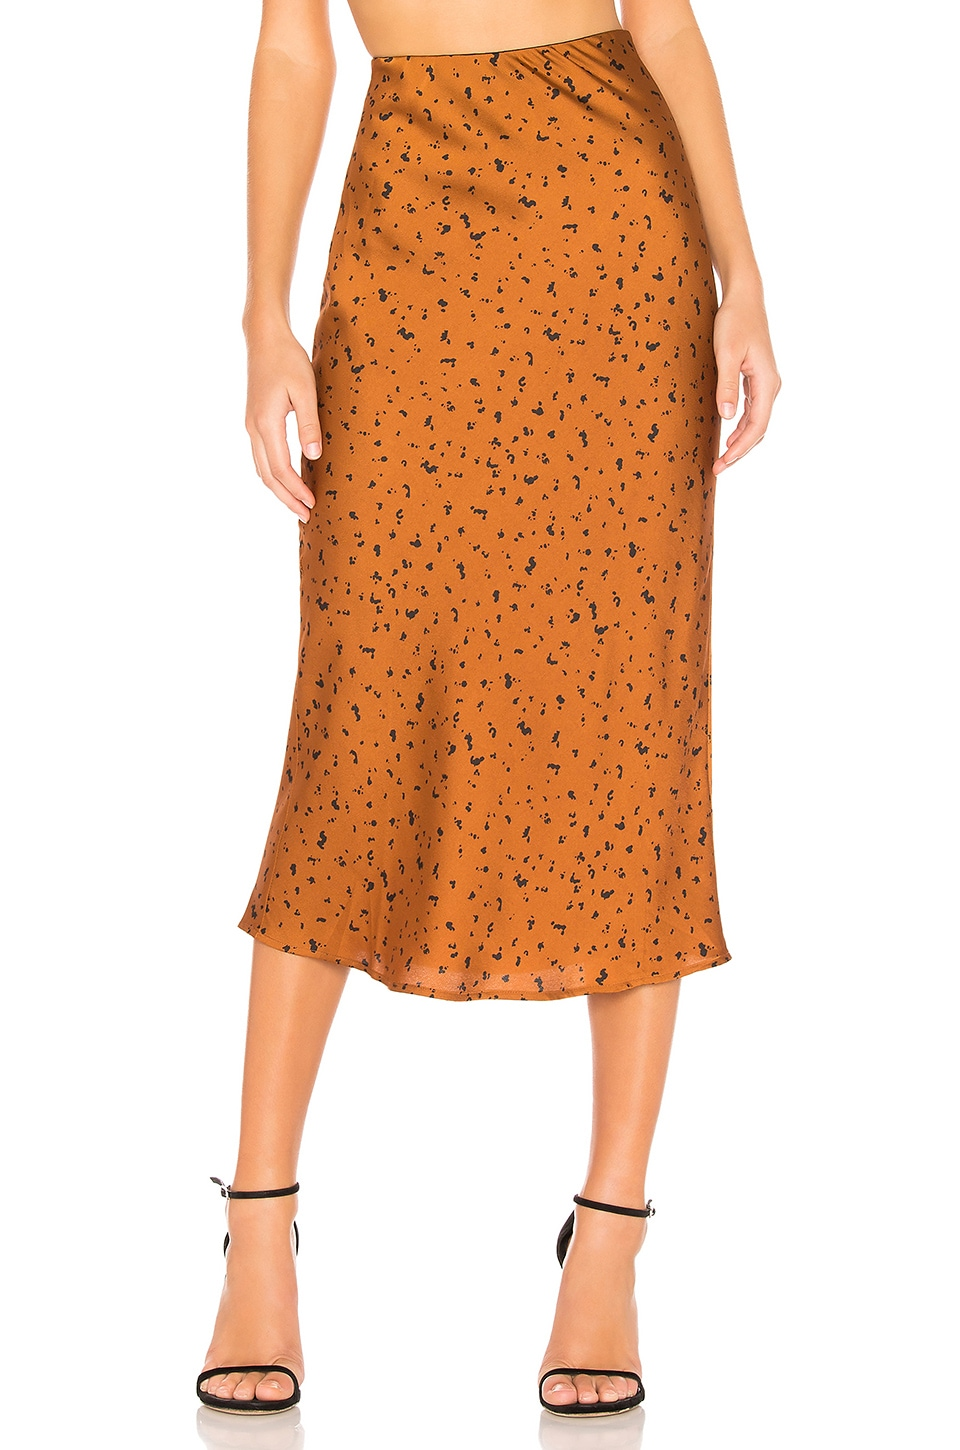 J.O.A. Animal Print Midi Skirt in Bronze Dot